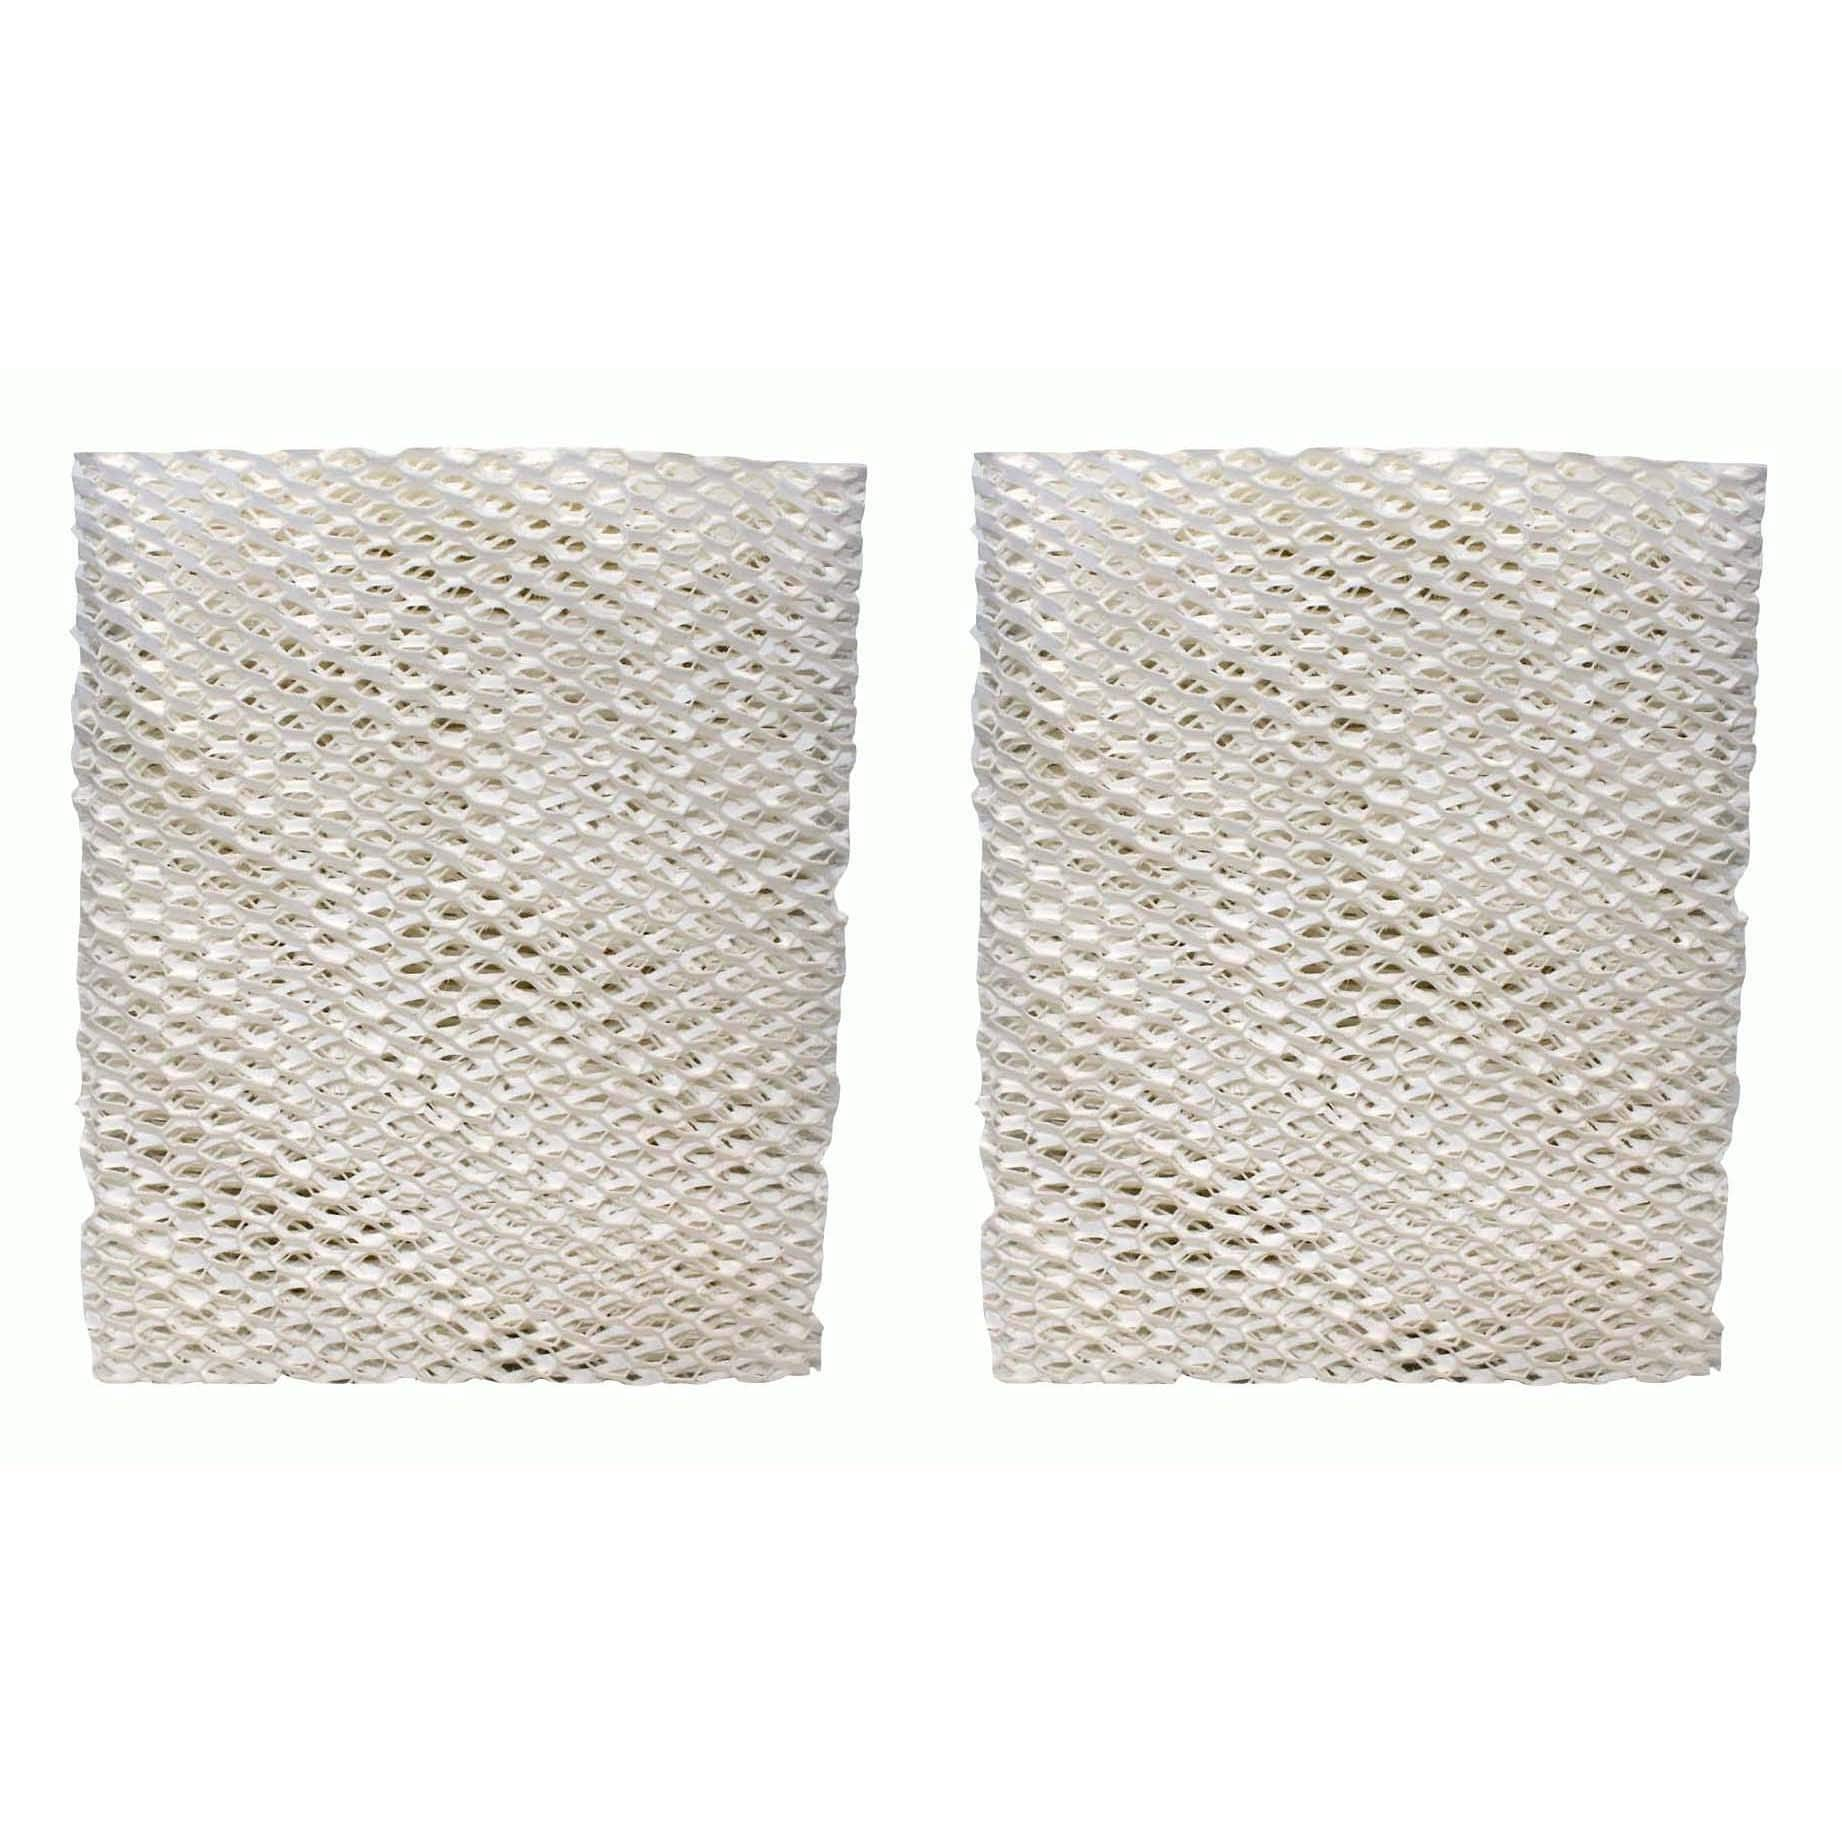 2 Crucial Air Humidifier Wick Filters Fit Vornado MD1-000...